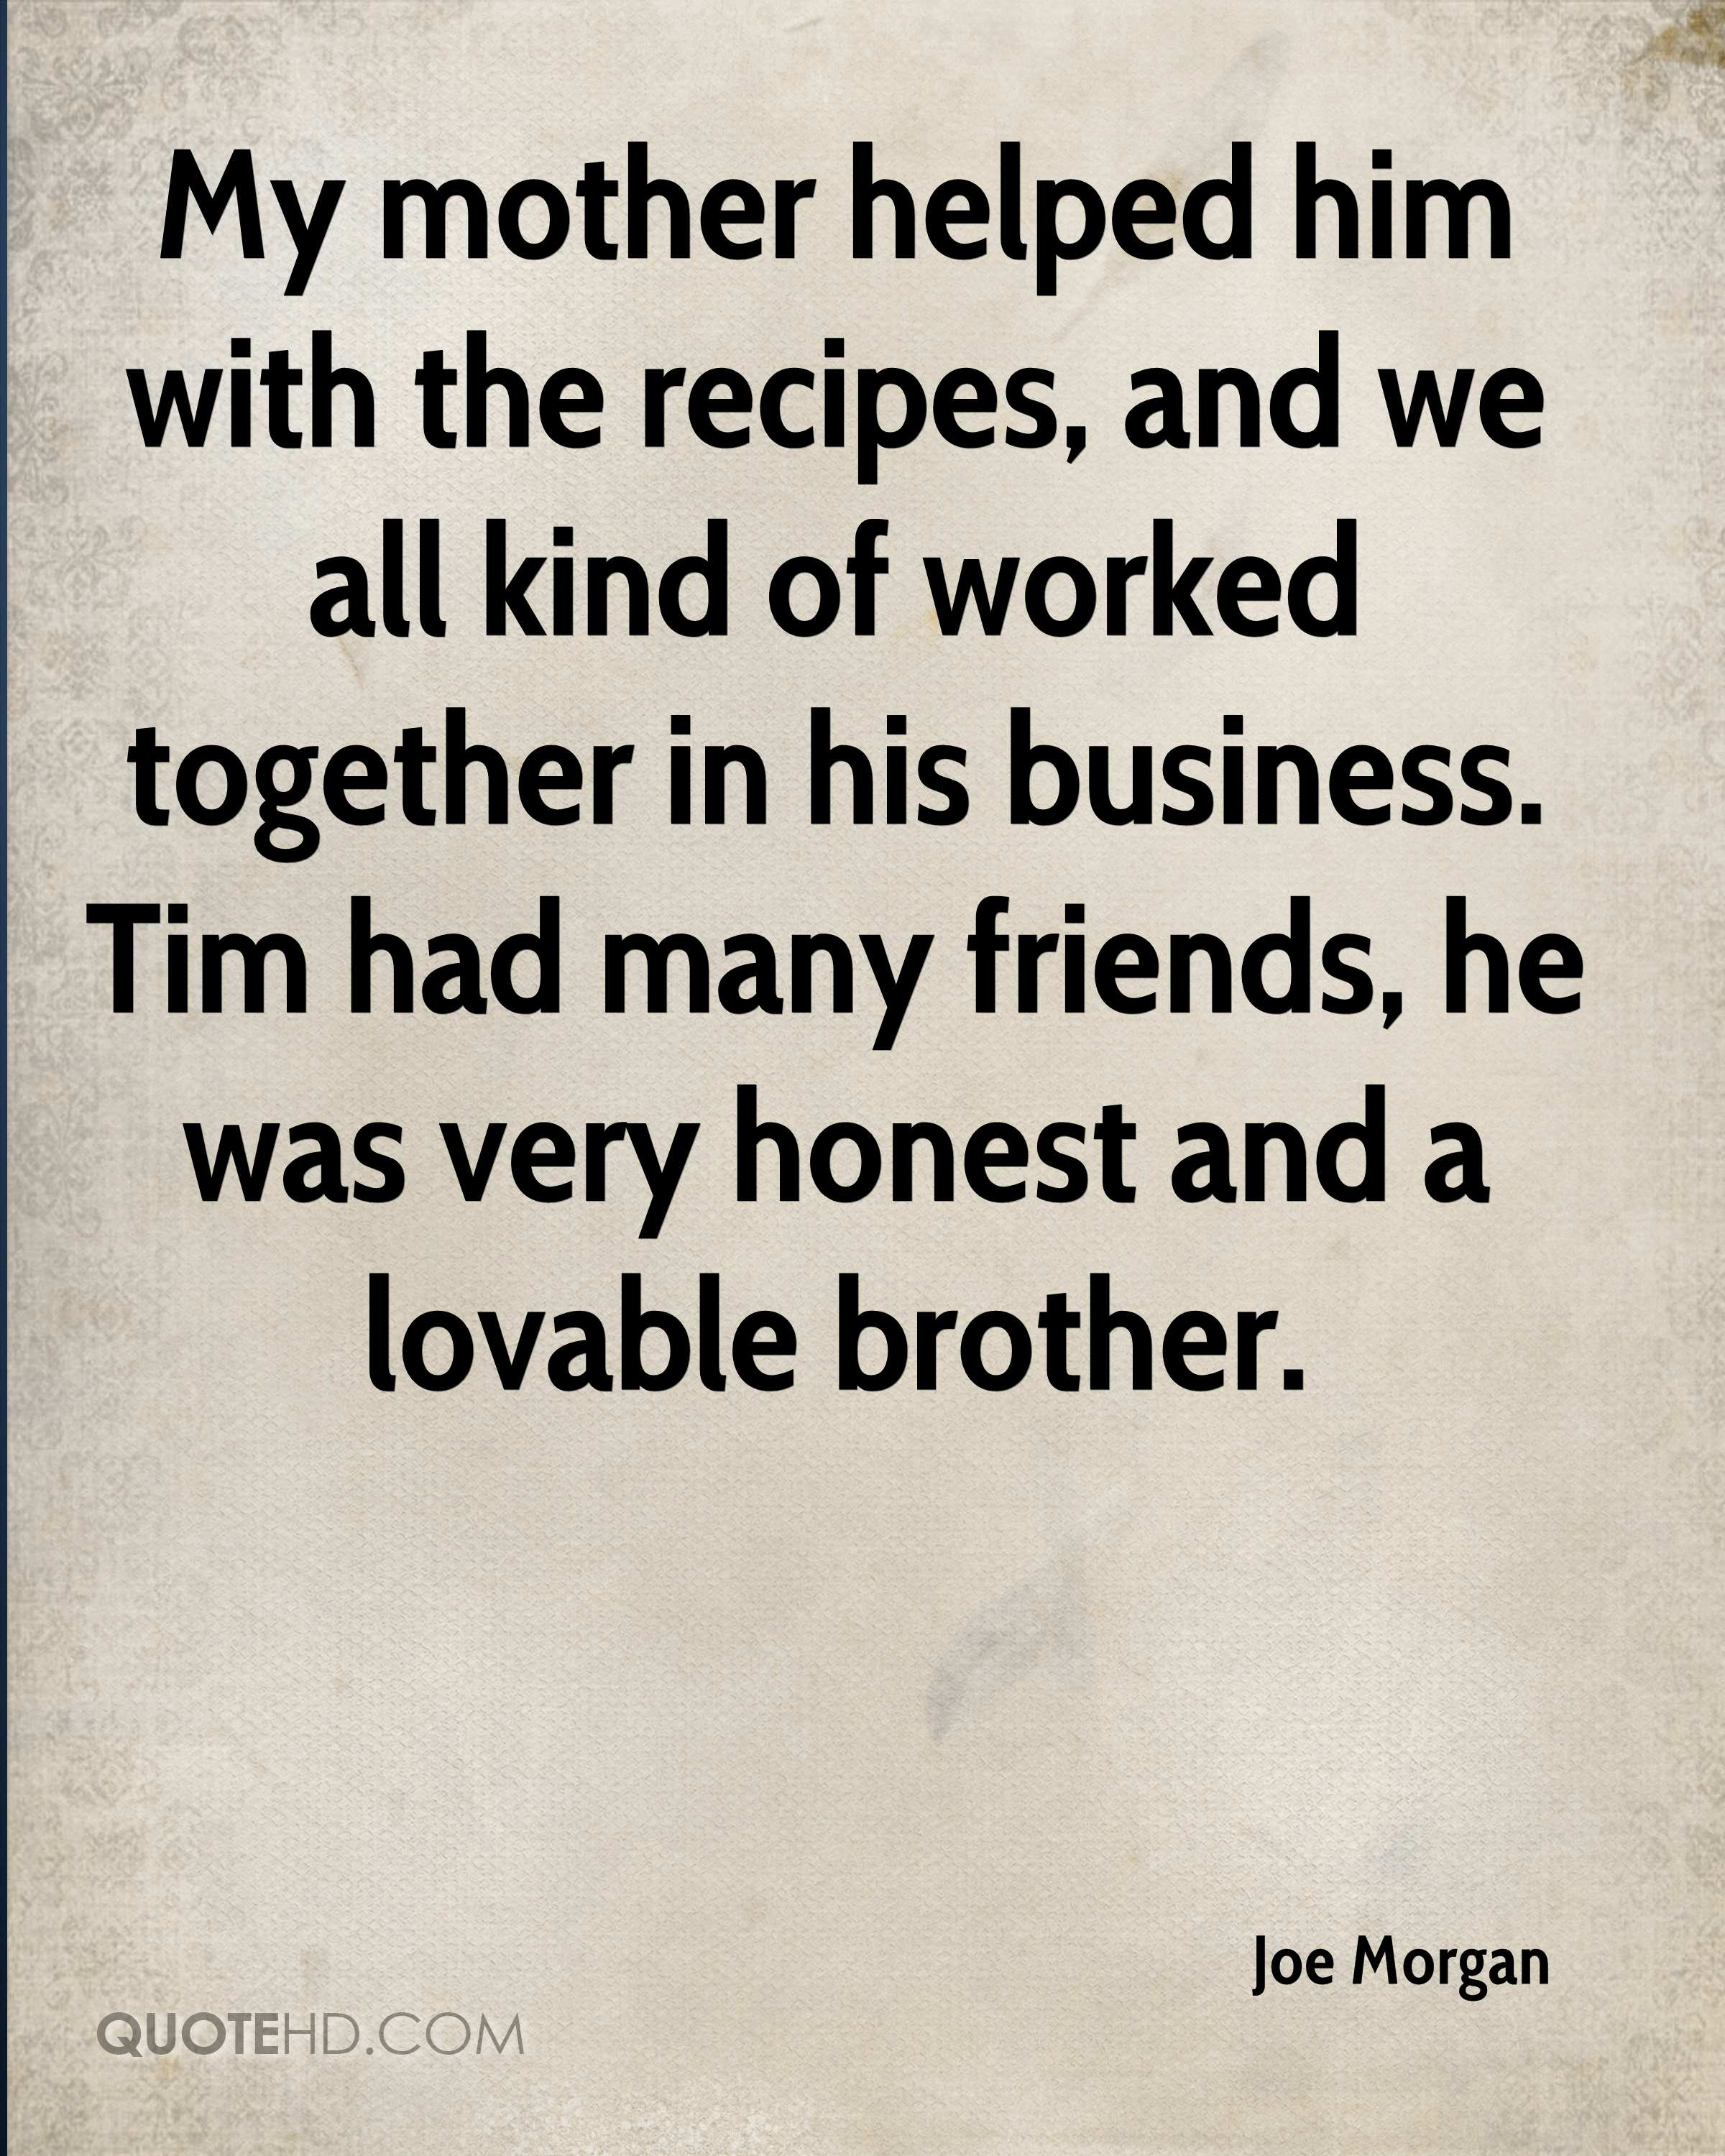 My mother helped him with the recipes, and we all kind of worked together in his business. Tim had many friends, he was very honest and a lovable brother.